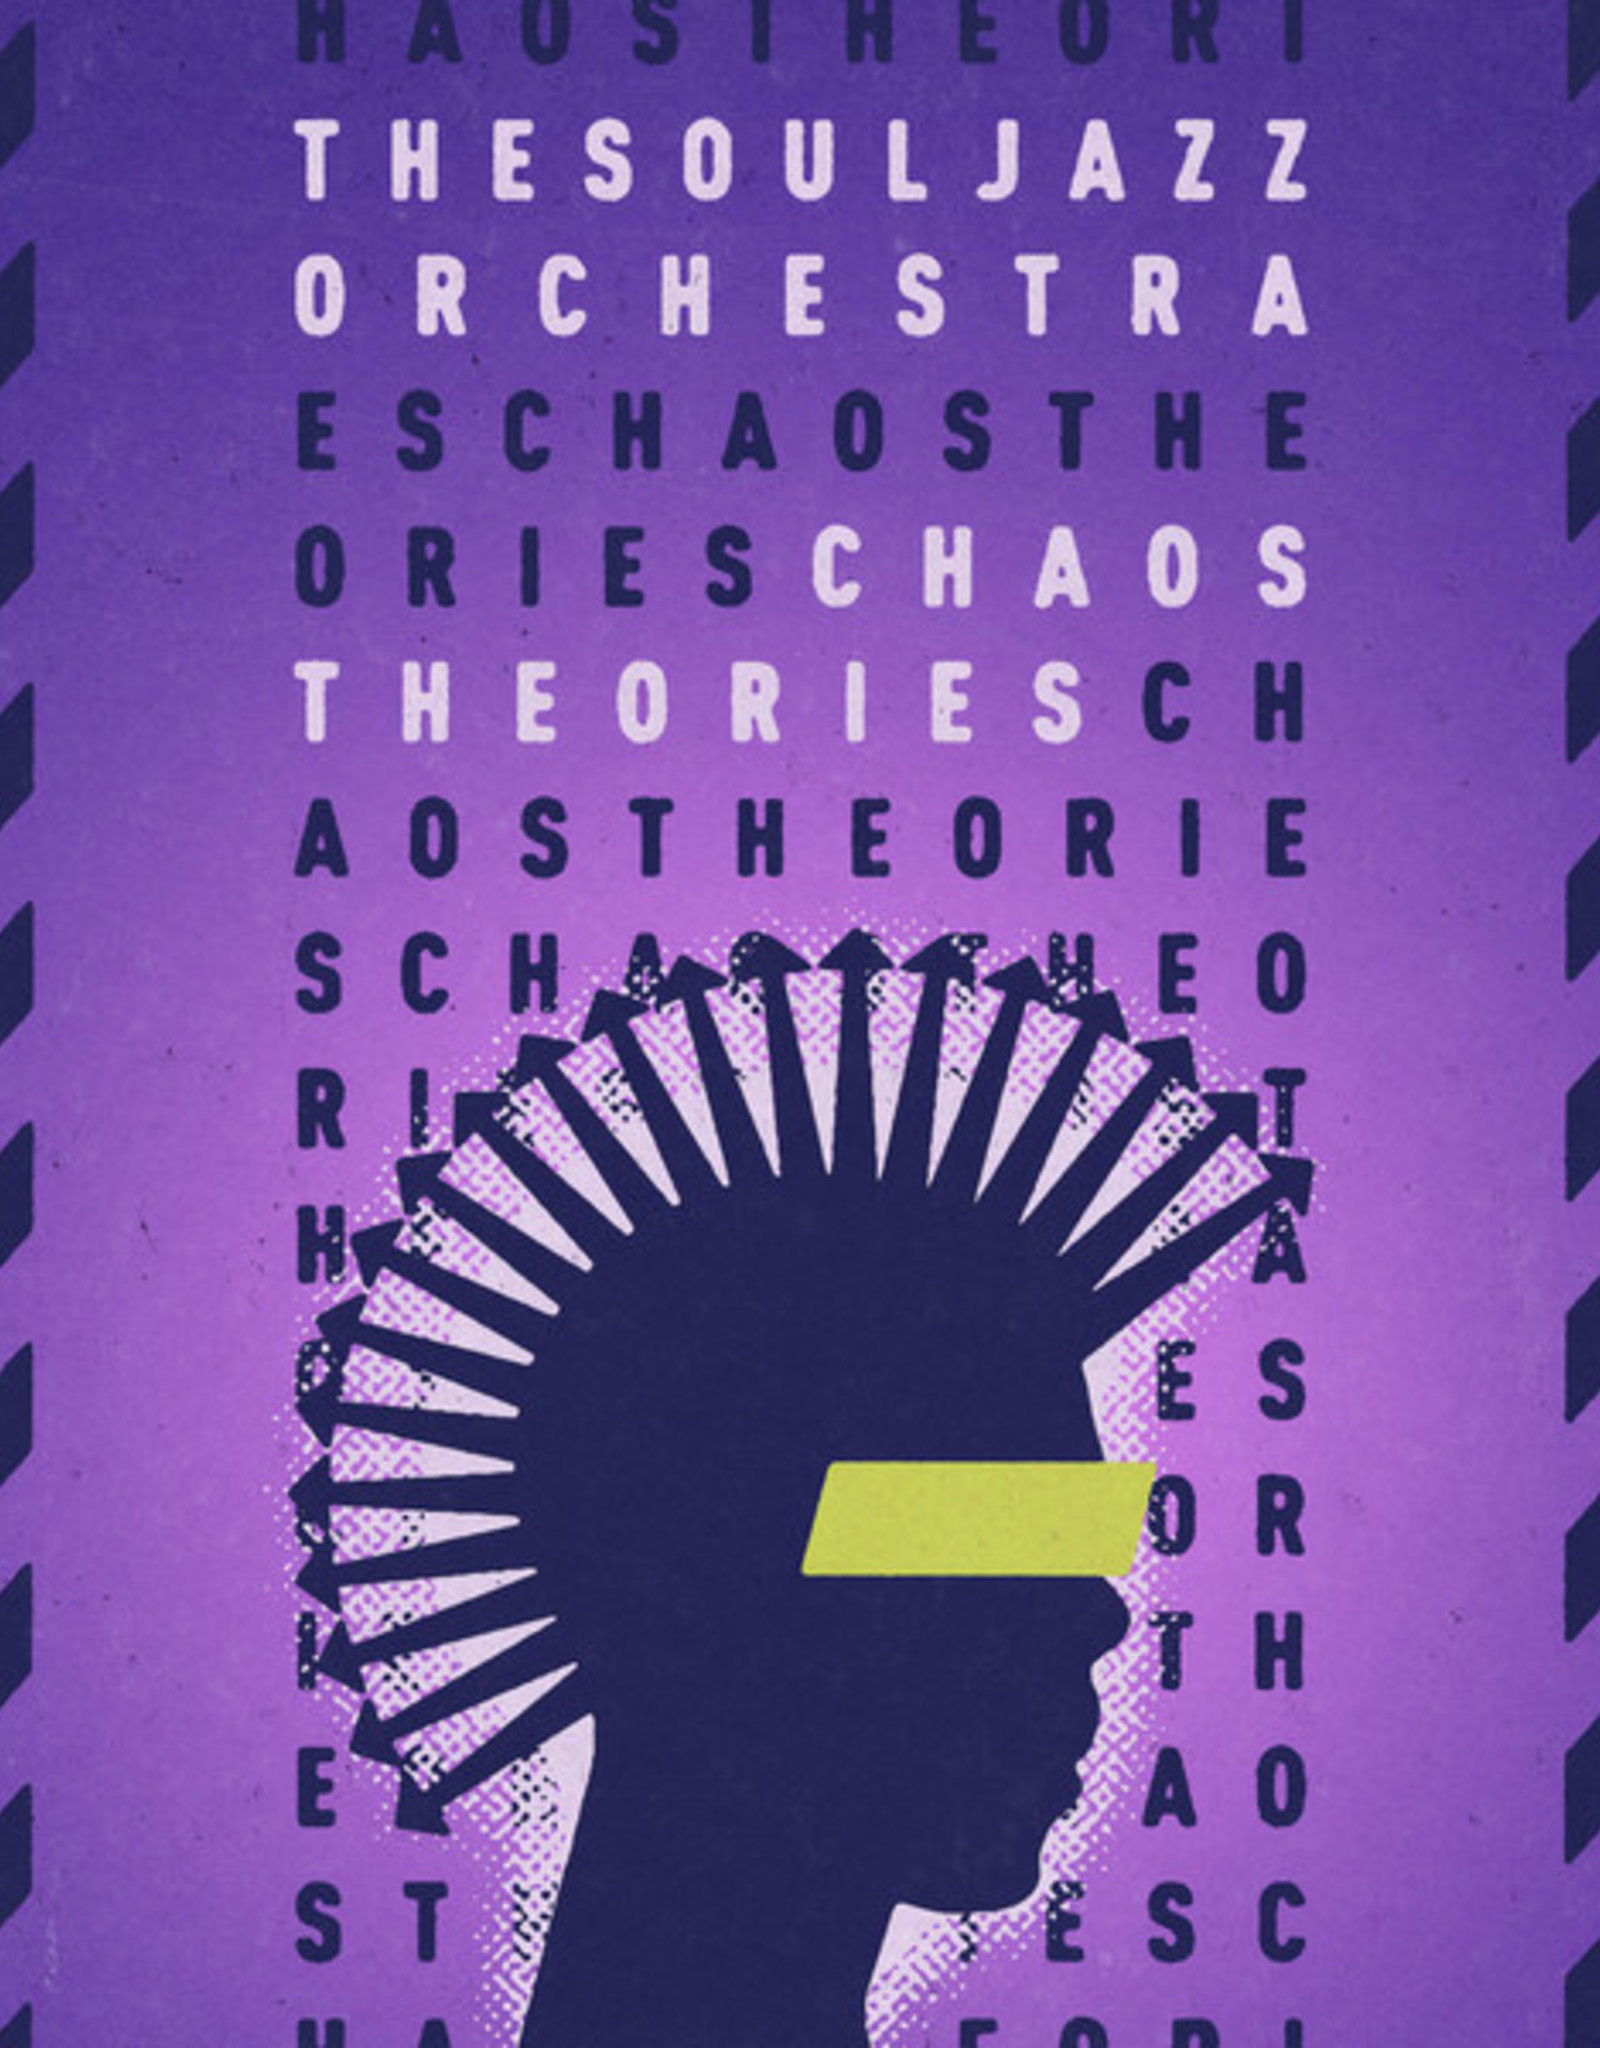 The Souljazz Orchestra - Chaos Theorie